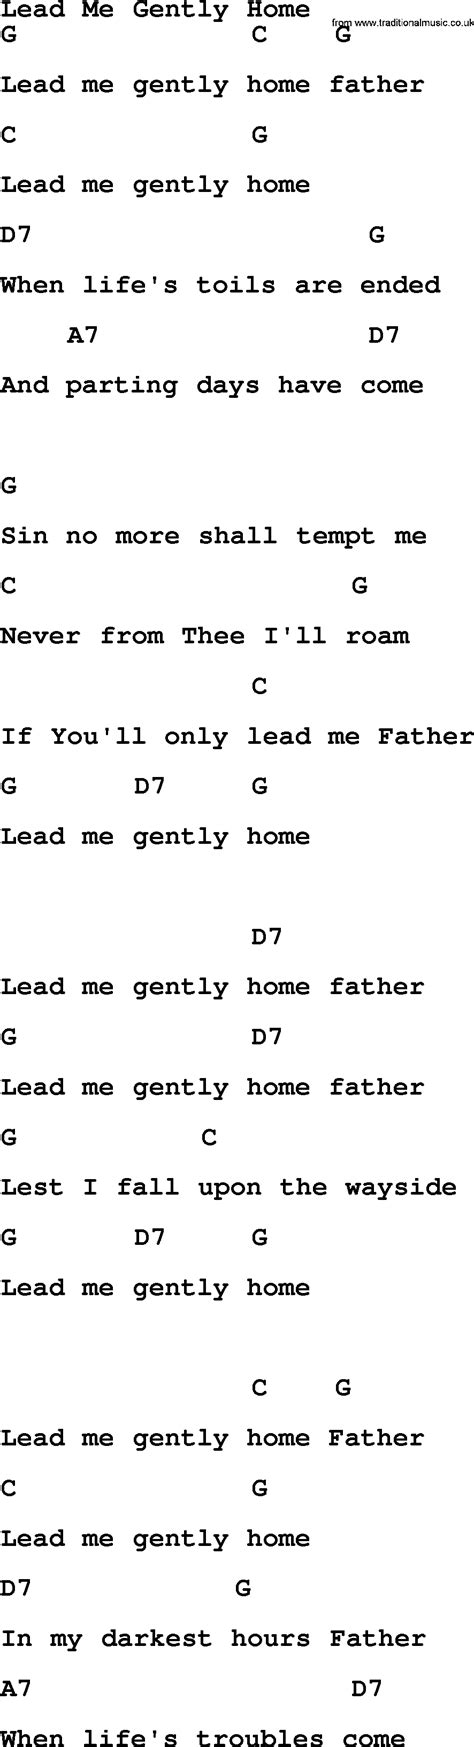 lead me gently home bluegrass lyrics with chords